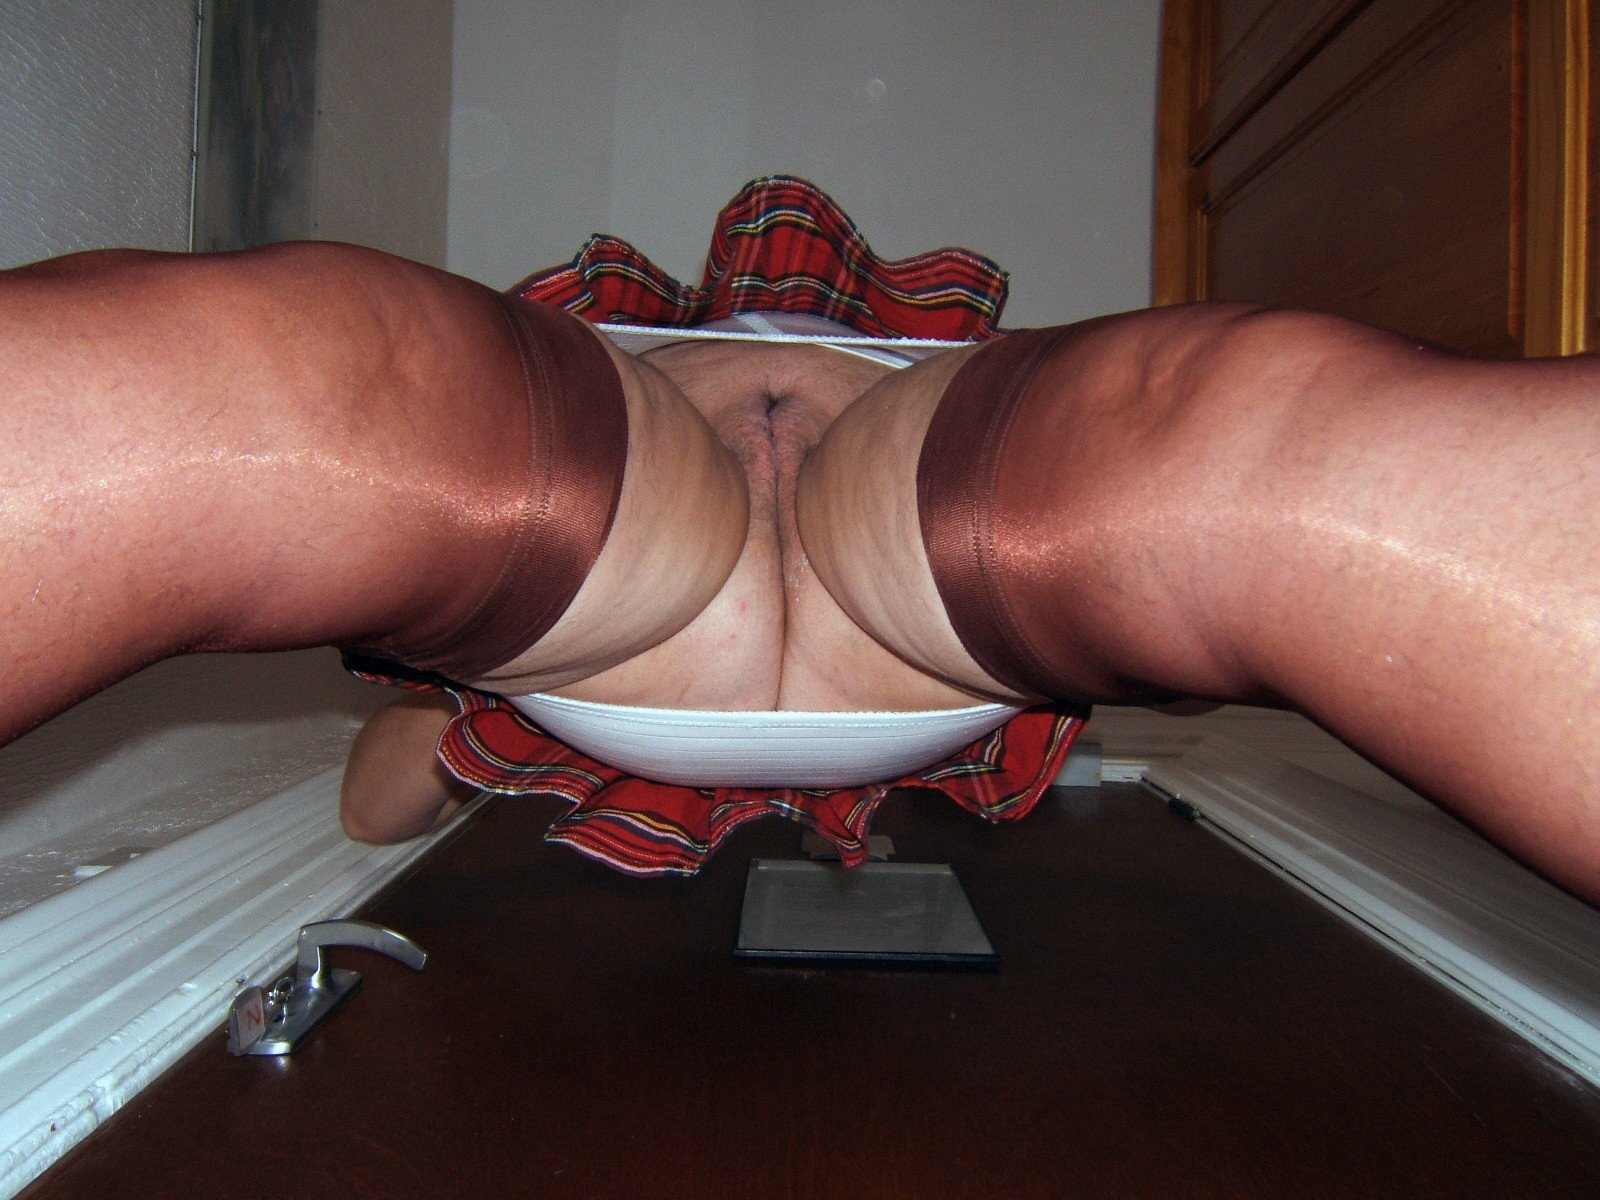 old pussy from below